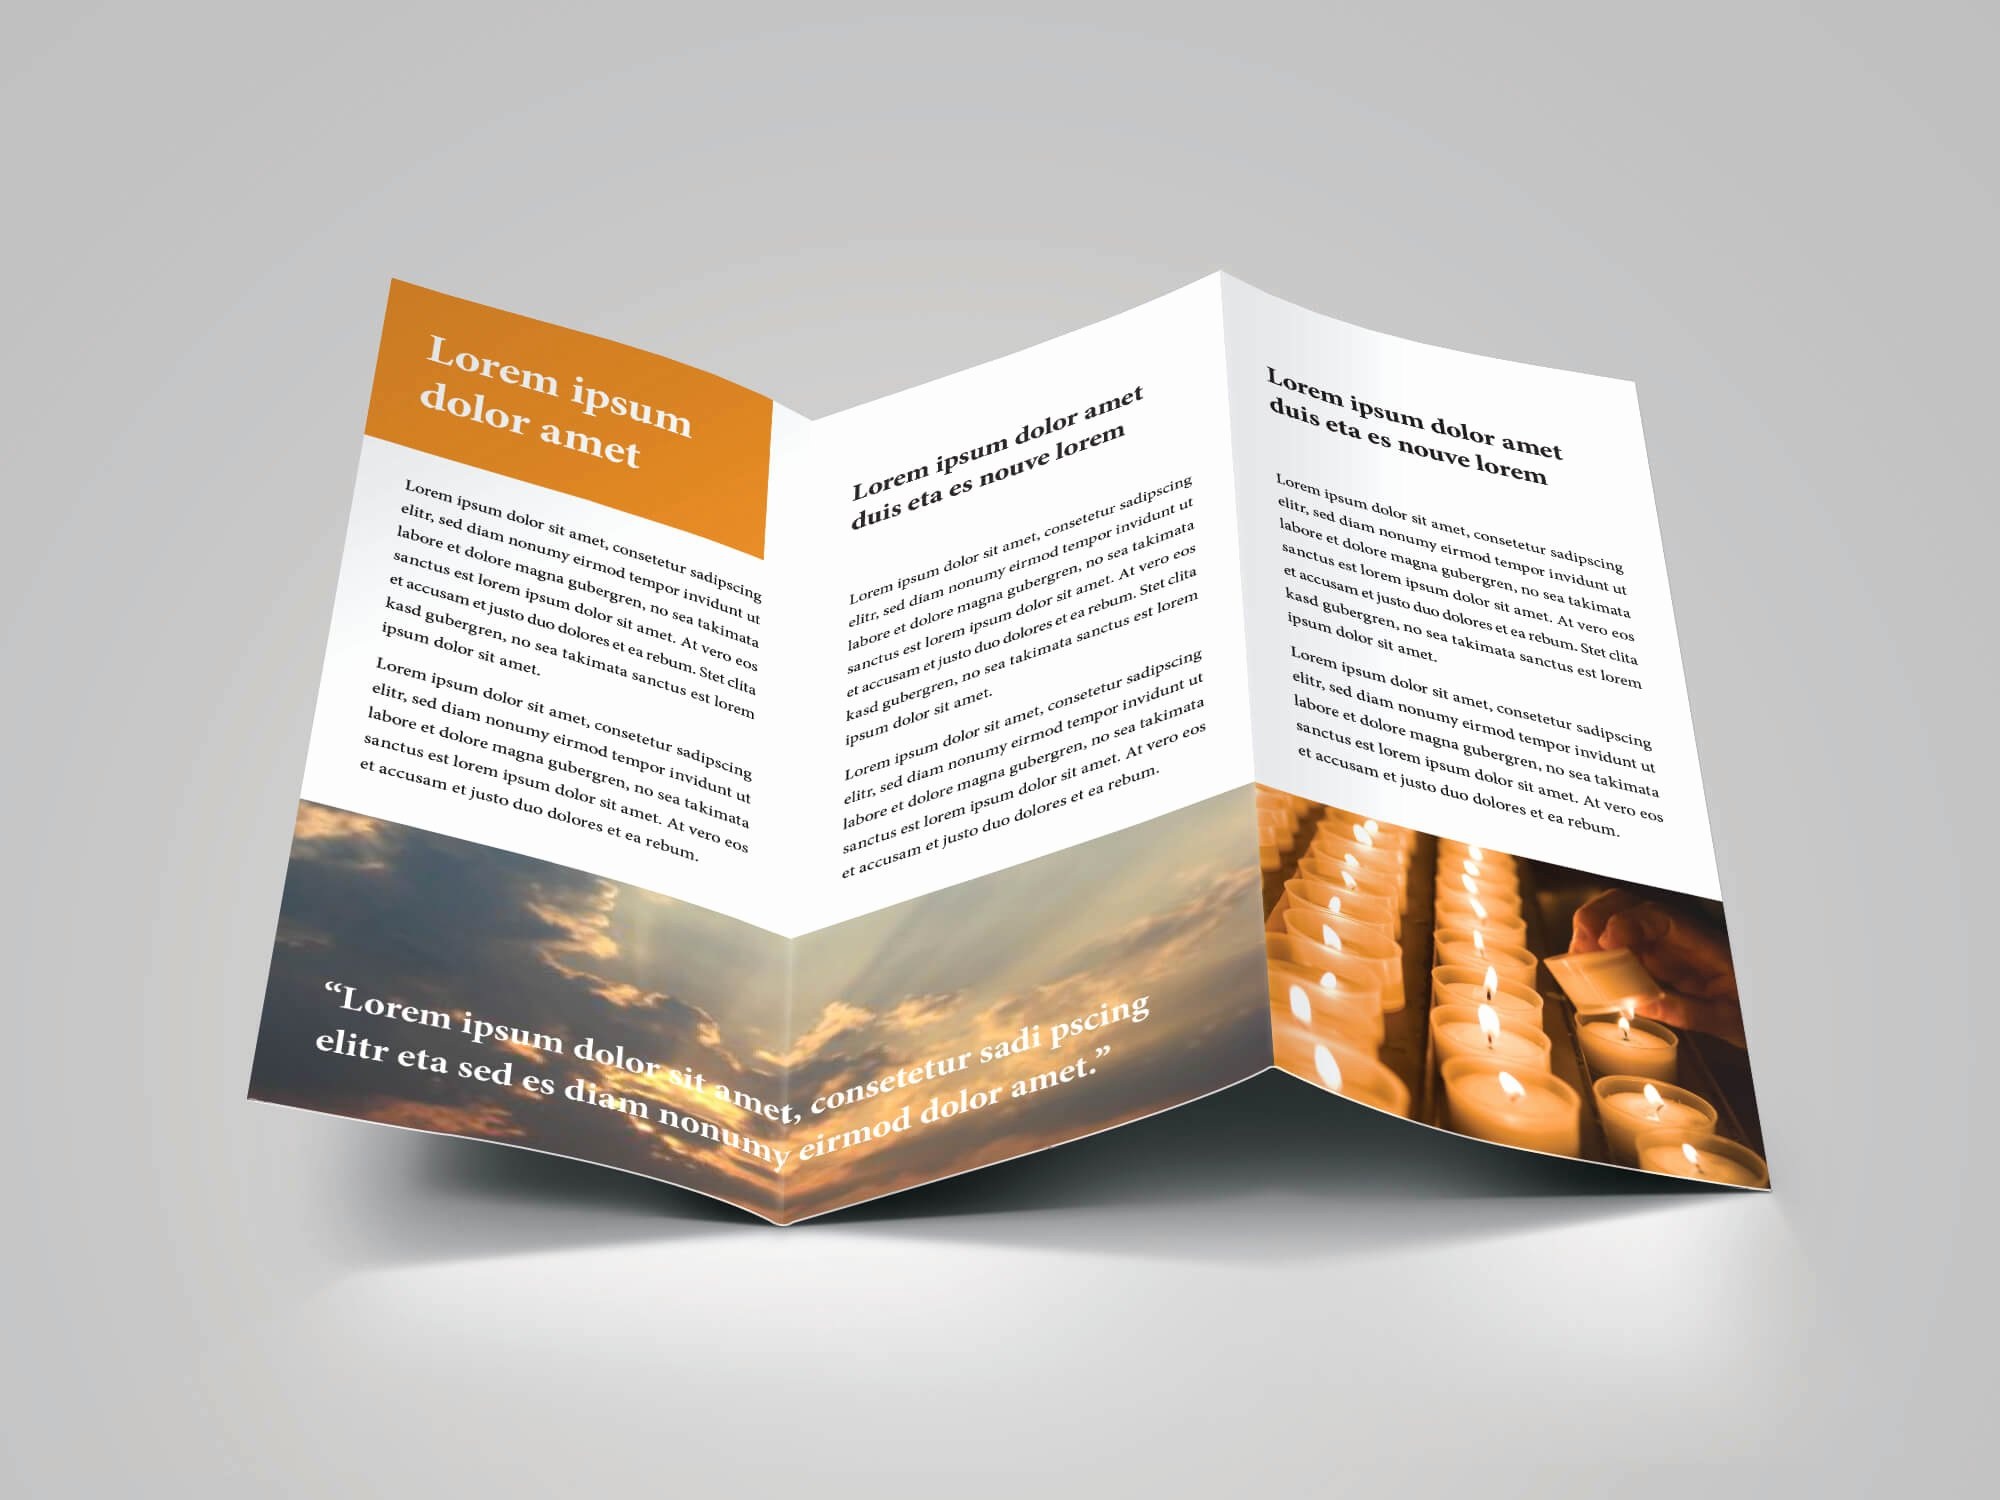 Church Bulletin Templates Indesign Inspirational Church Bulletin Trifold Brochure Download 6 Layout Pages